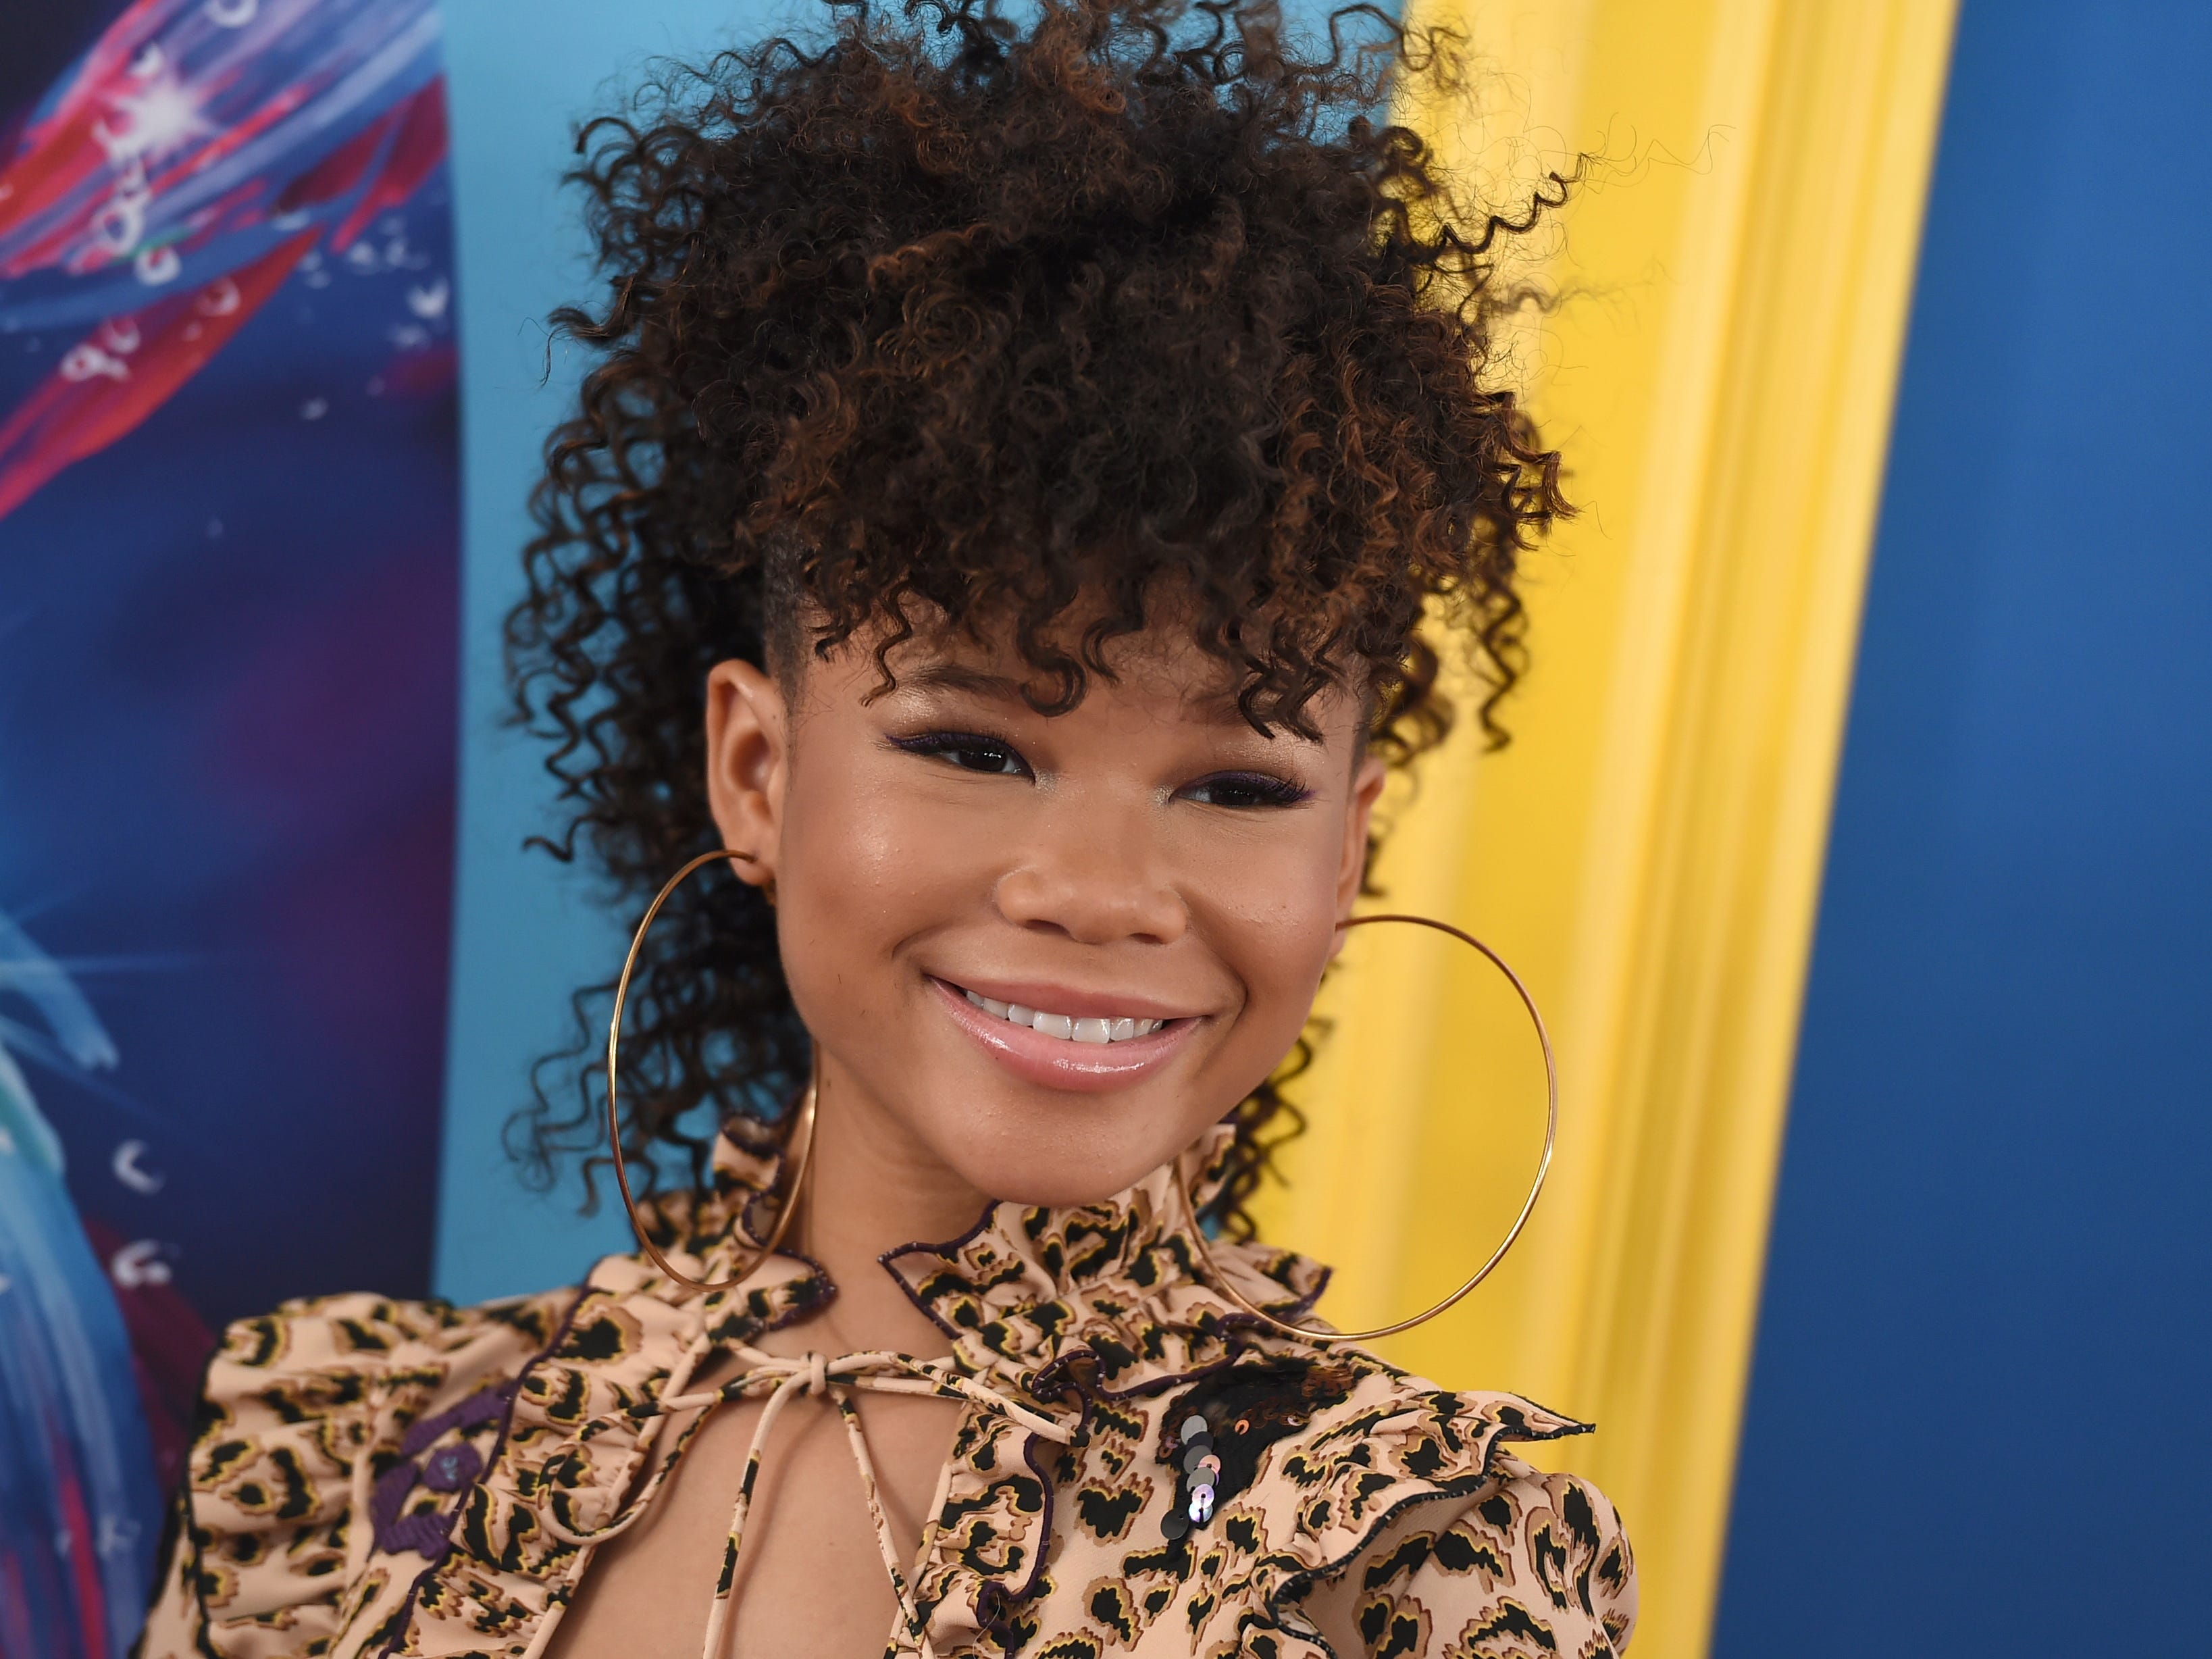 Storm Reid arrives at the Teen Choice Awards at The Forum on Sunday, Aug. 12, 2018, in Inglewood, Calif. (Photo by Jordan Strauss/Invision/AP) ORG XMIT: CAPM115